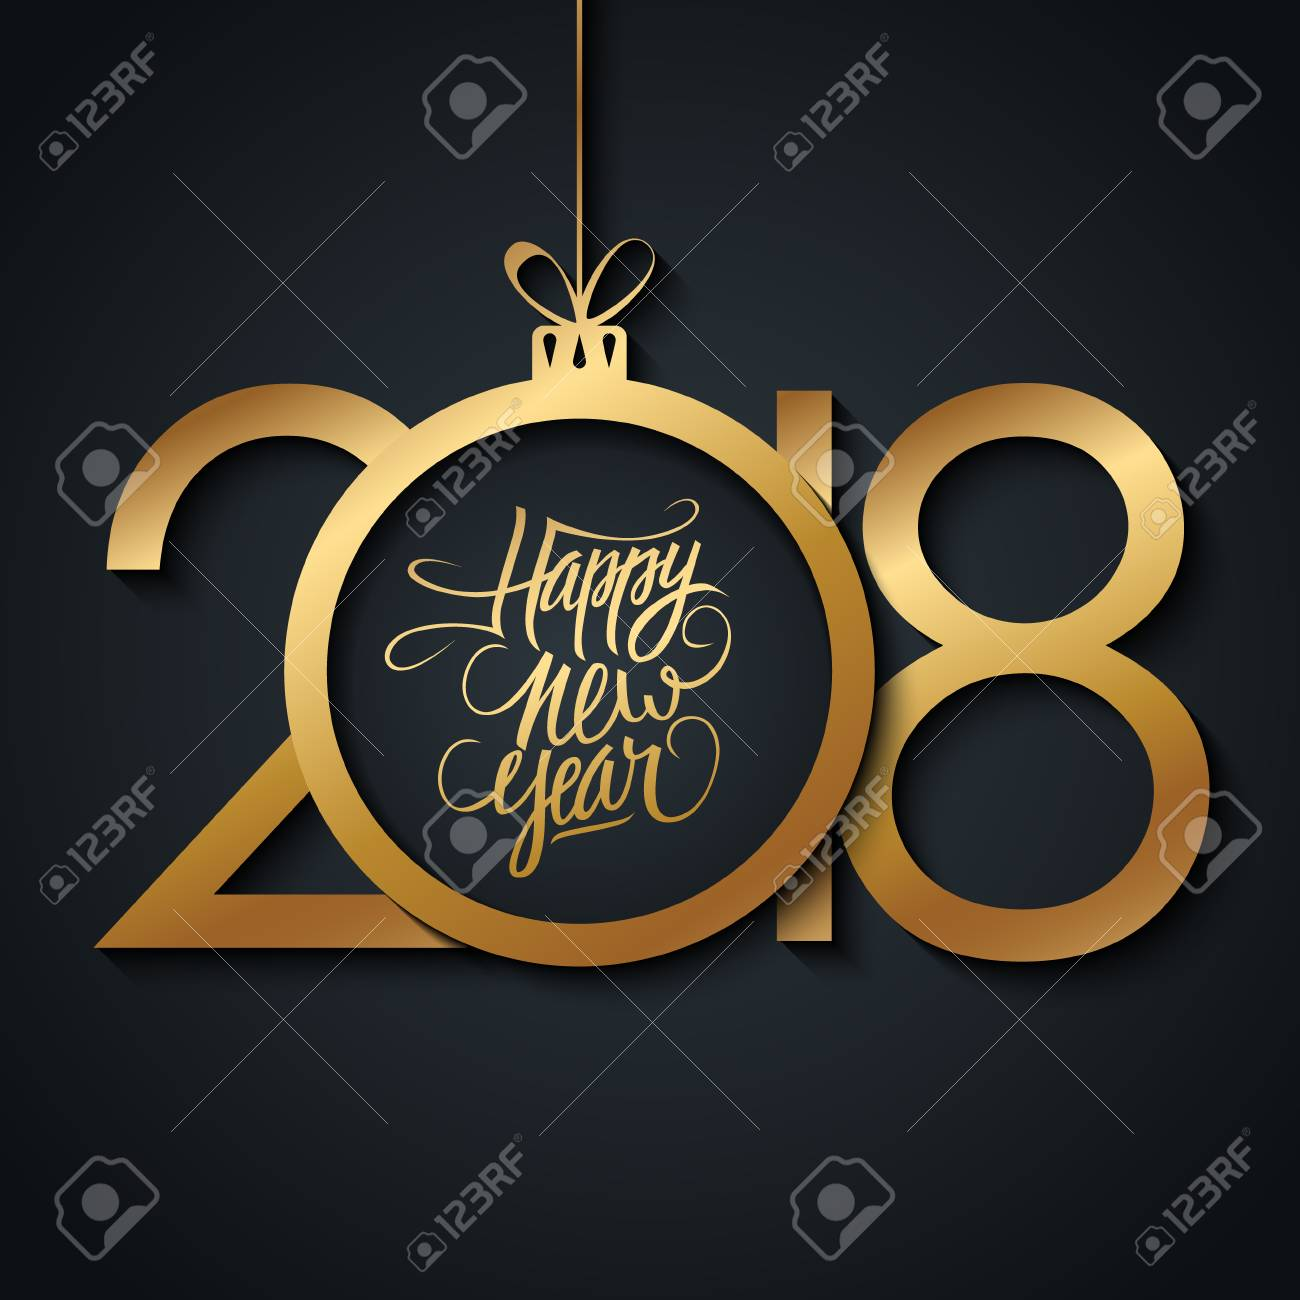 2018 Happy New Year Greeting Card With Hand Drawn Lettering Holiday